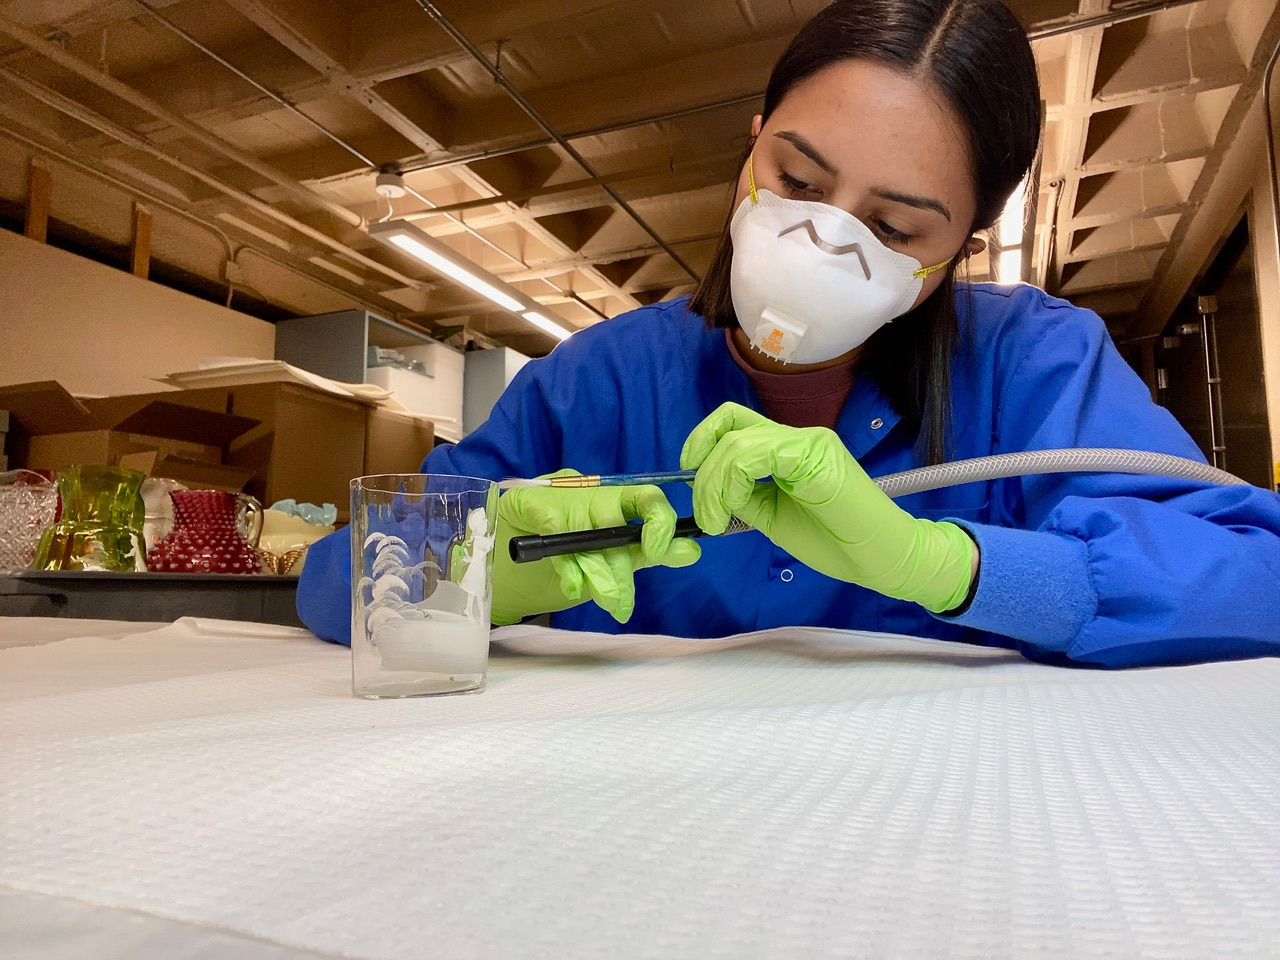 Madisyn Rostro cleans a glass museum object